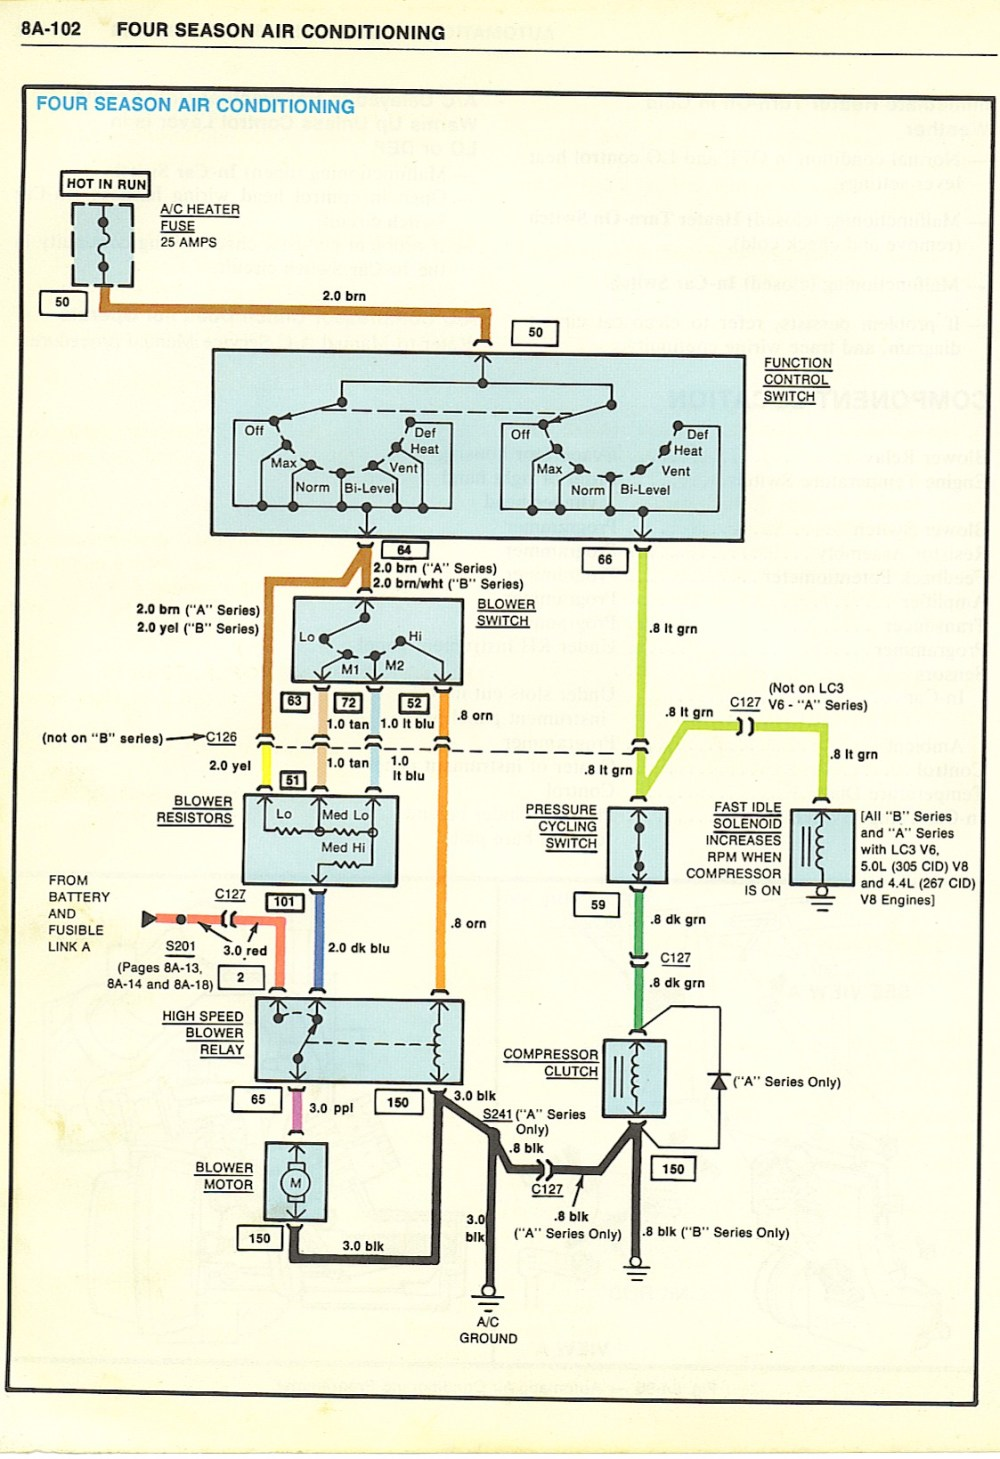 medium resolution of 1980 camaro ac wiring schematic wiring diagram blog1980 camaro wiring diagram wiring diagram 1980 camaro ac